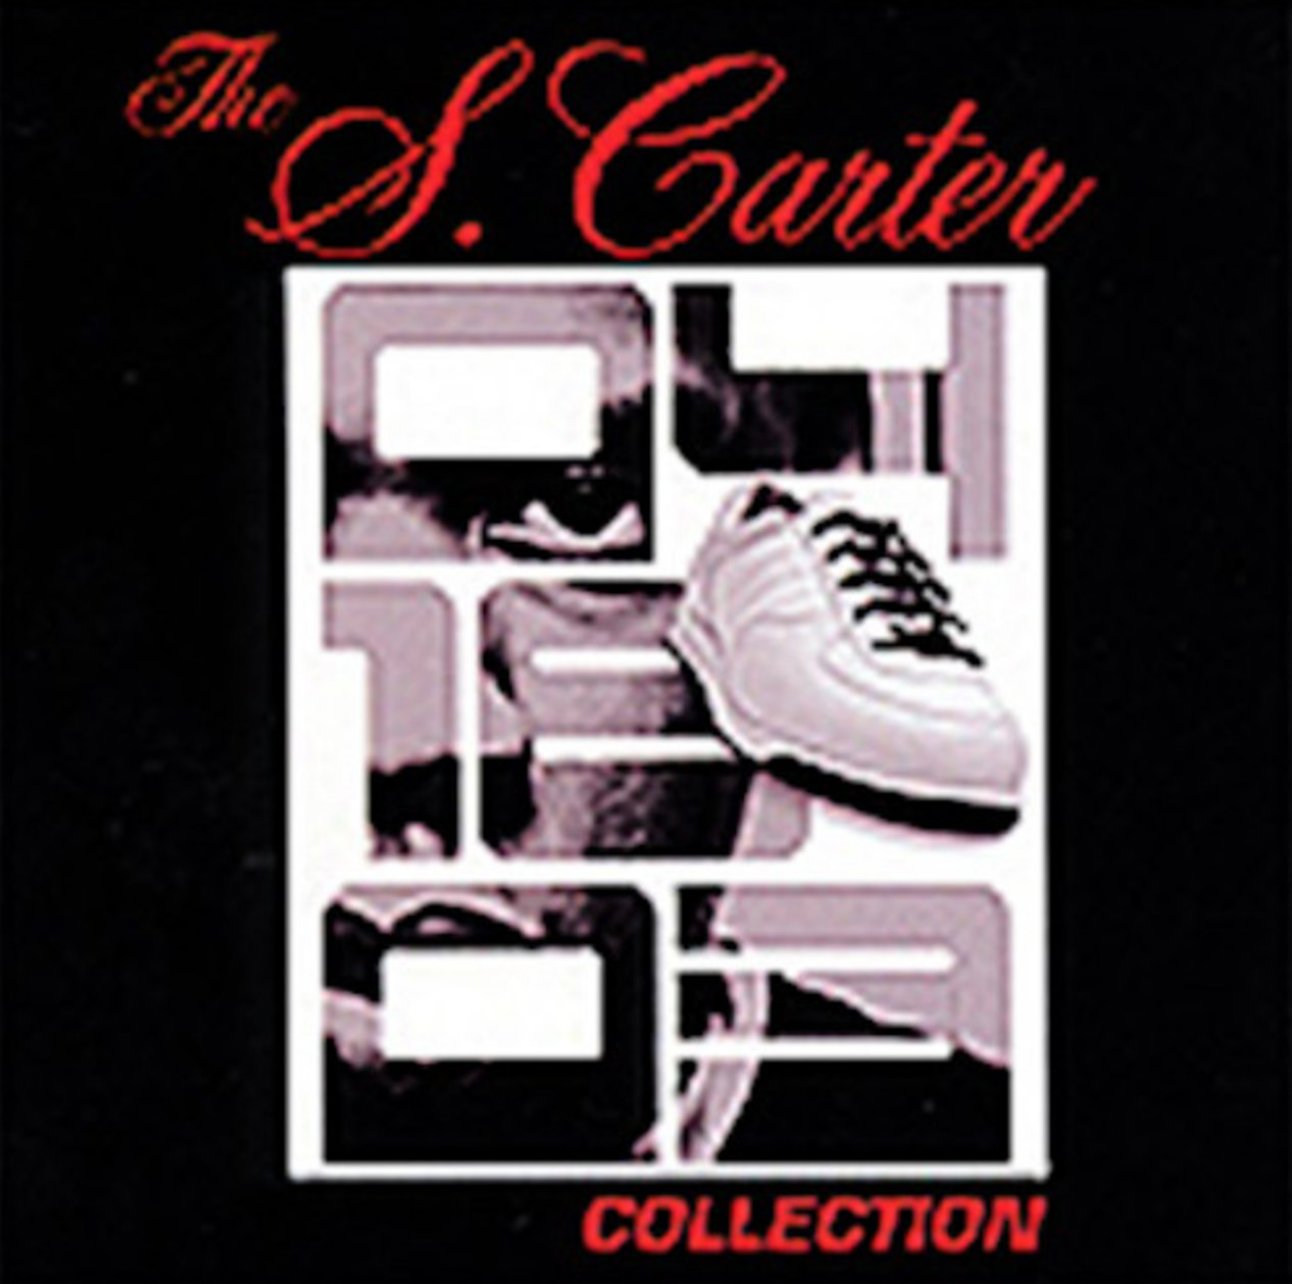 S. Carter Collection (15th Anniversary) https://t.co/IKKG2pZayw #TIDAL https://t.co/0VrHhpCZCh